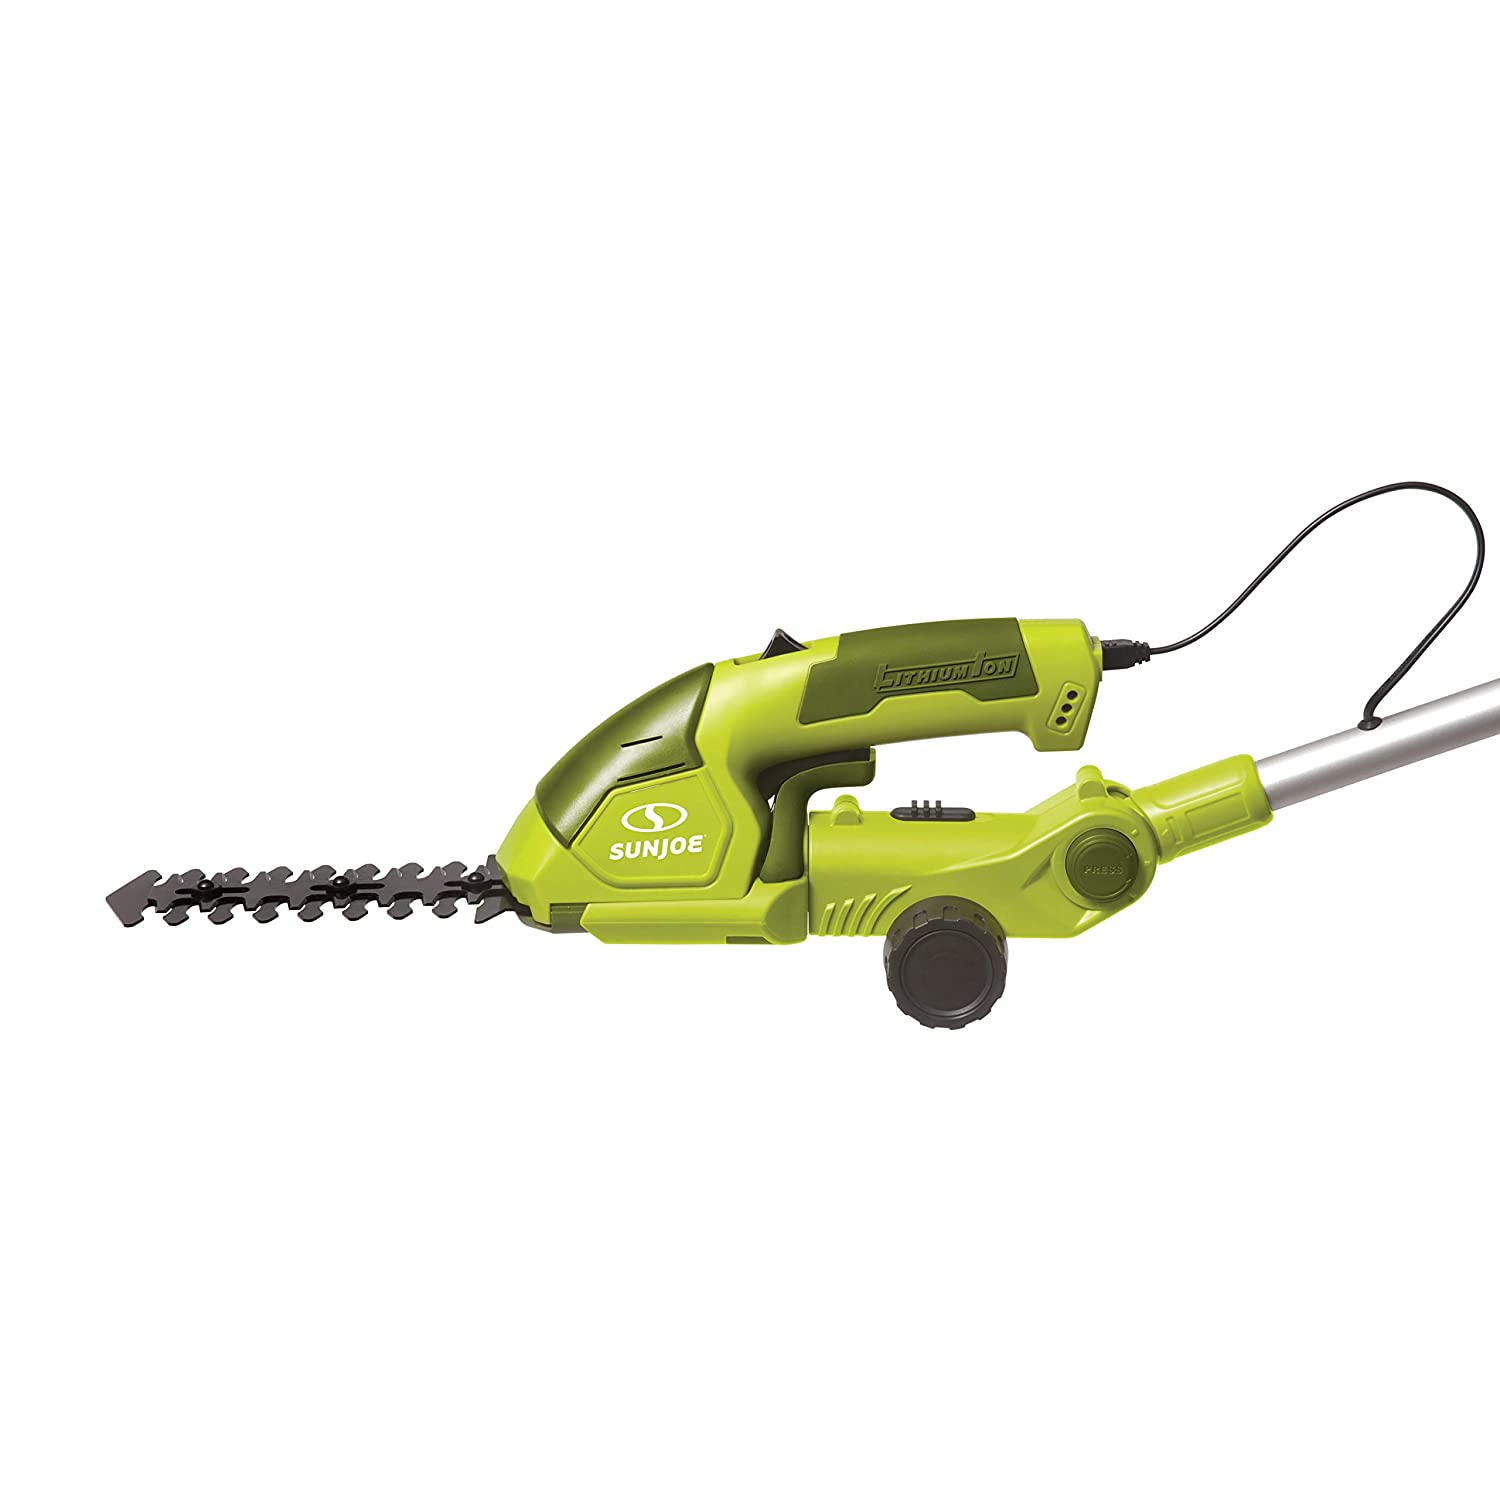 Sun Joe HJ605CC Cordless 2-in-1 Grass Shear Hedge Trimmer w Extension Pole